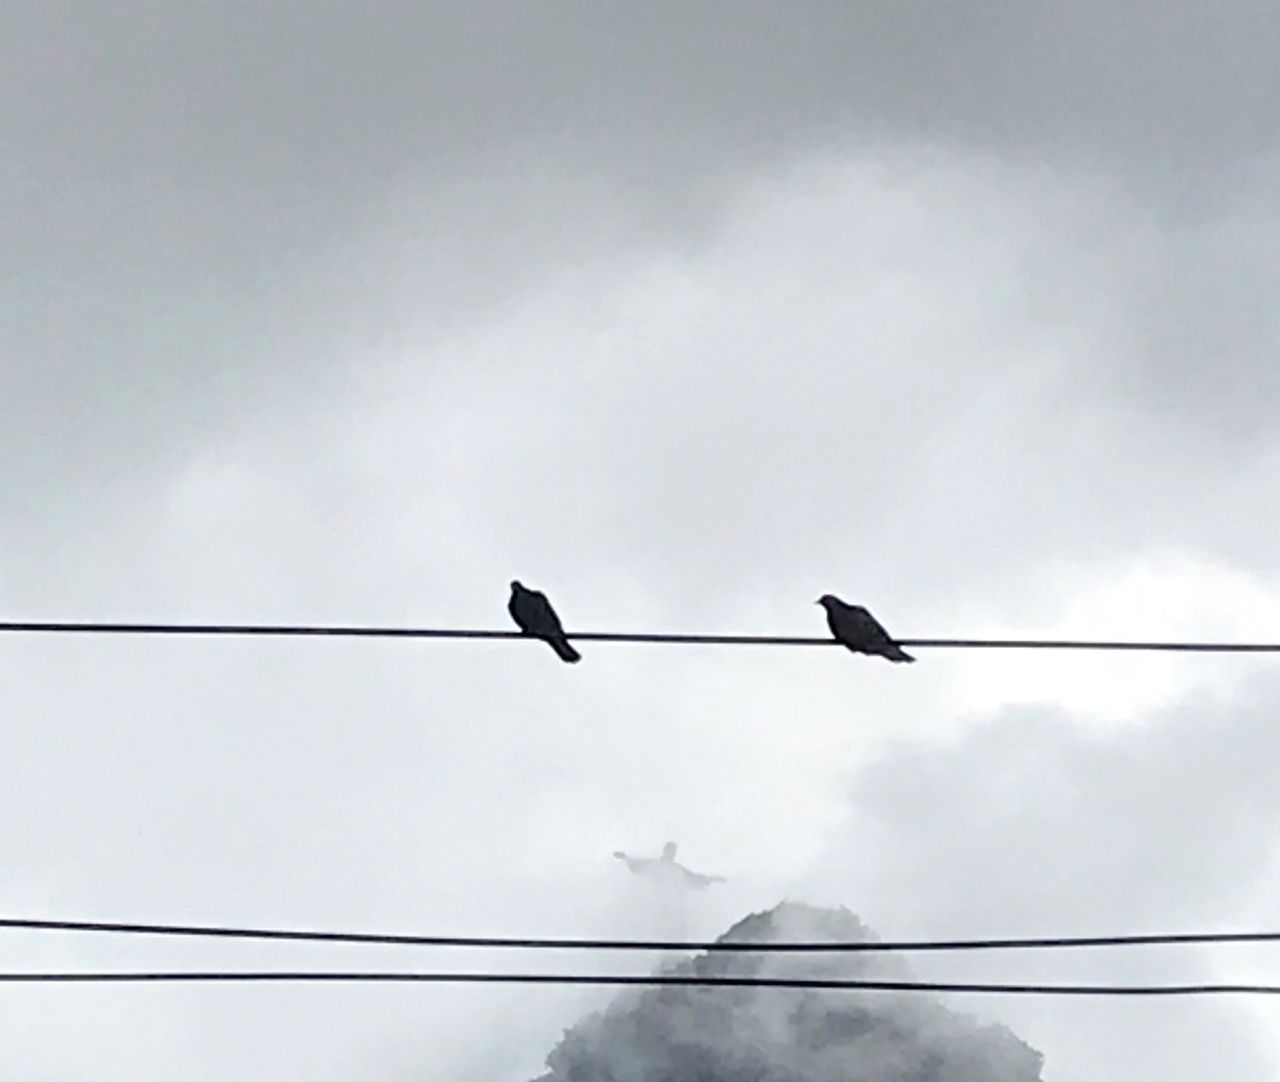 bird, vertebrate, animal themes, animal wildlife, animals in the wild, animal, low angle view, cable, perching, electricity, sky, power line, cloud - sky, connection, one animal, no people, day, nature, outdoors, power supply